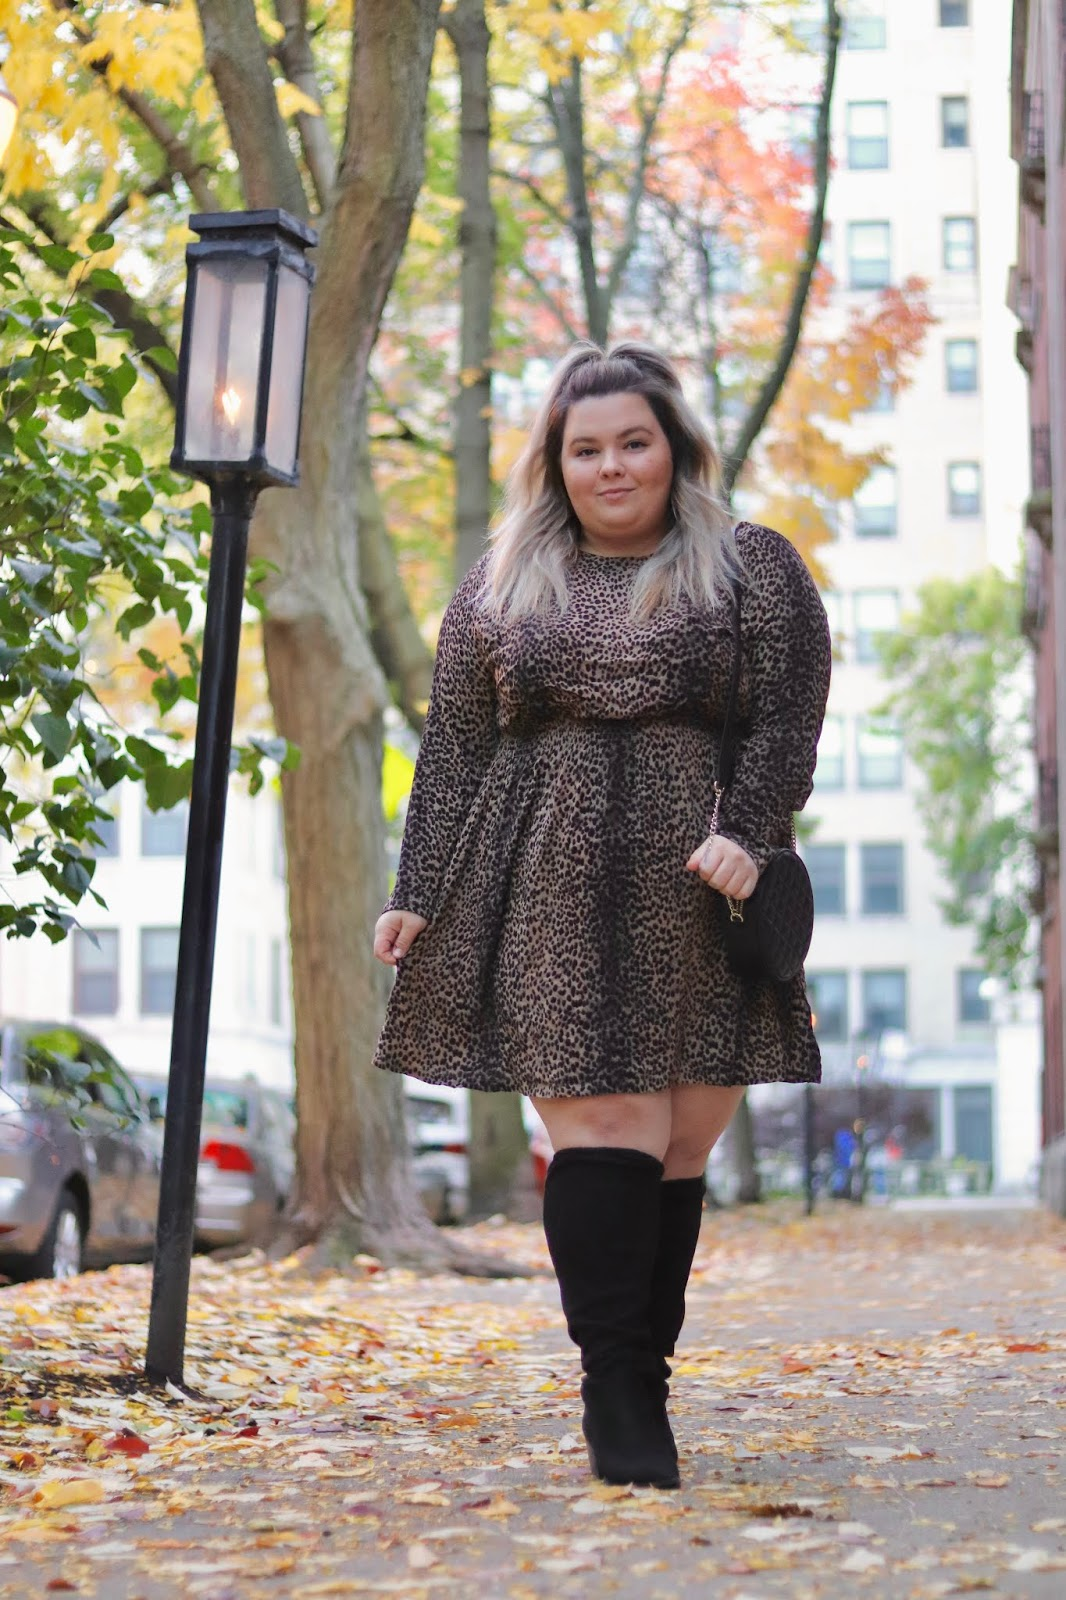 Chicago Plus Size Petite Fashion Blogger, influencer, YouTuber, and model Natalie Craig, of Natalie in the City, reviews H&M's plus size dresses.